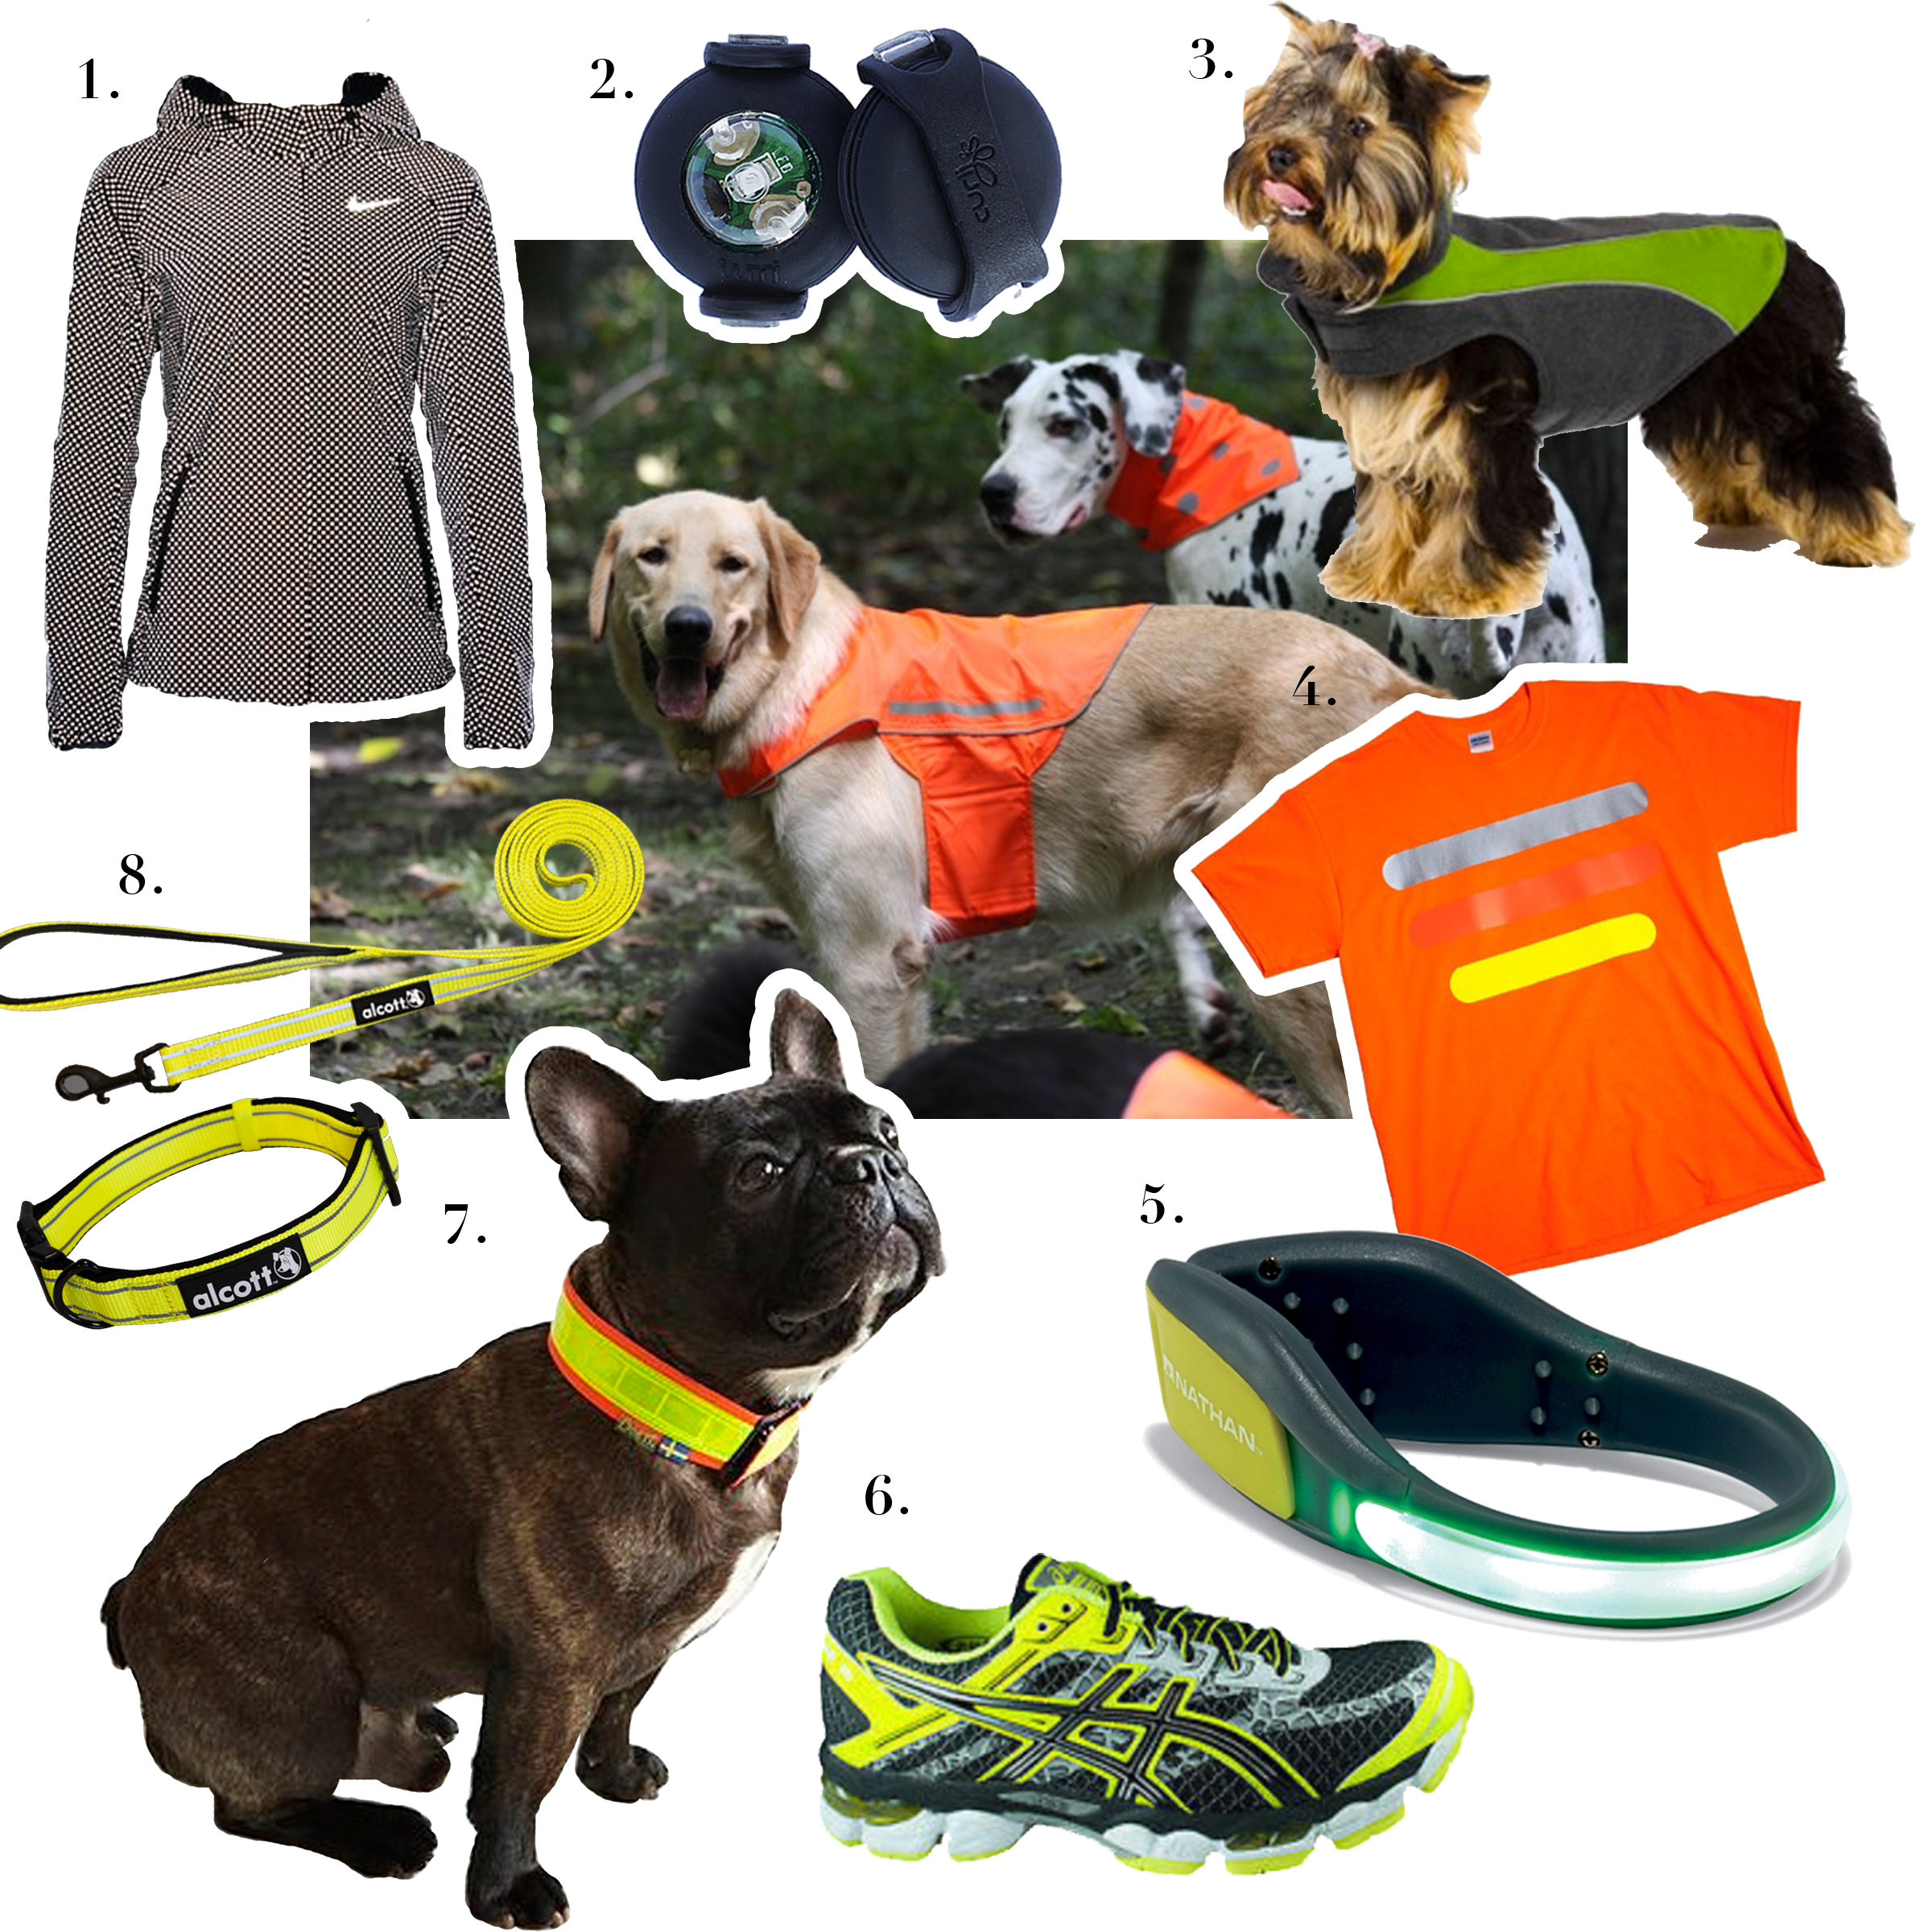 1. Nike,    Shield Flash Max Jacket     2. Curli,    Luumi LED     3. Kakadu Pet,    Explorer Double Fleece     4. Protecto Products,    Reflective T-Shirt     5. Nathan Sports,    LightSpur     6. Asics,    Gel-Cumulus 15/16 Lightshow Sneakers     7. Boett,    Reflective Harness     8. Alcott,    Visibility Adventure Leash and Collar    Middle Photo by   Mudd and Wyeth